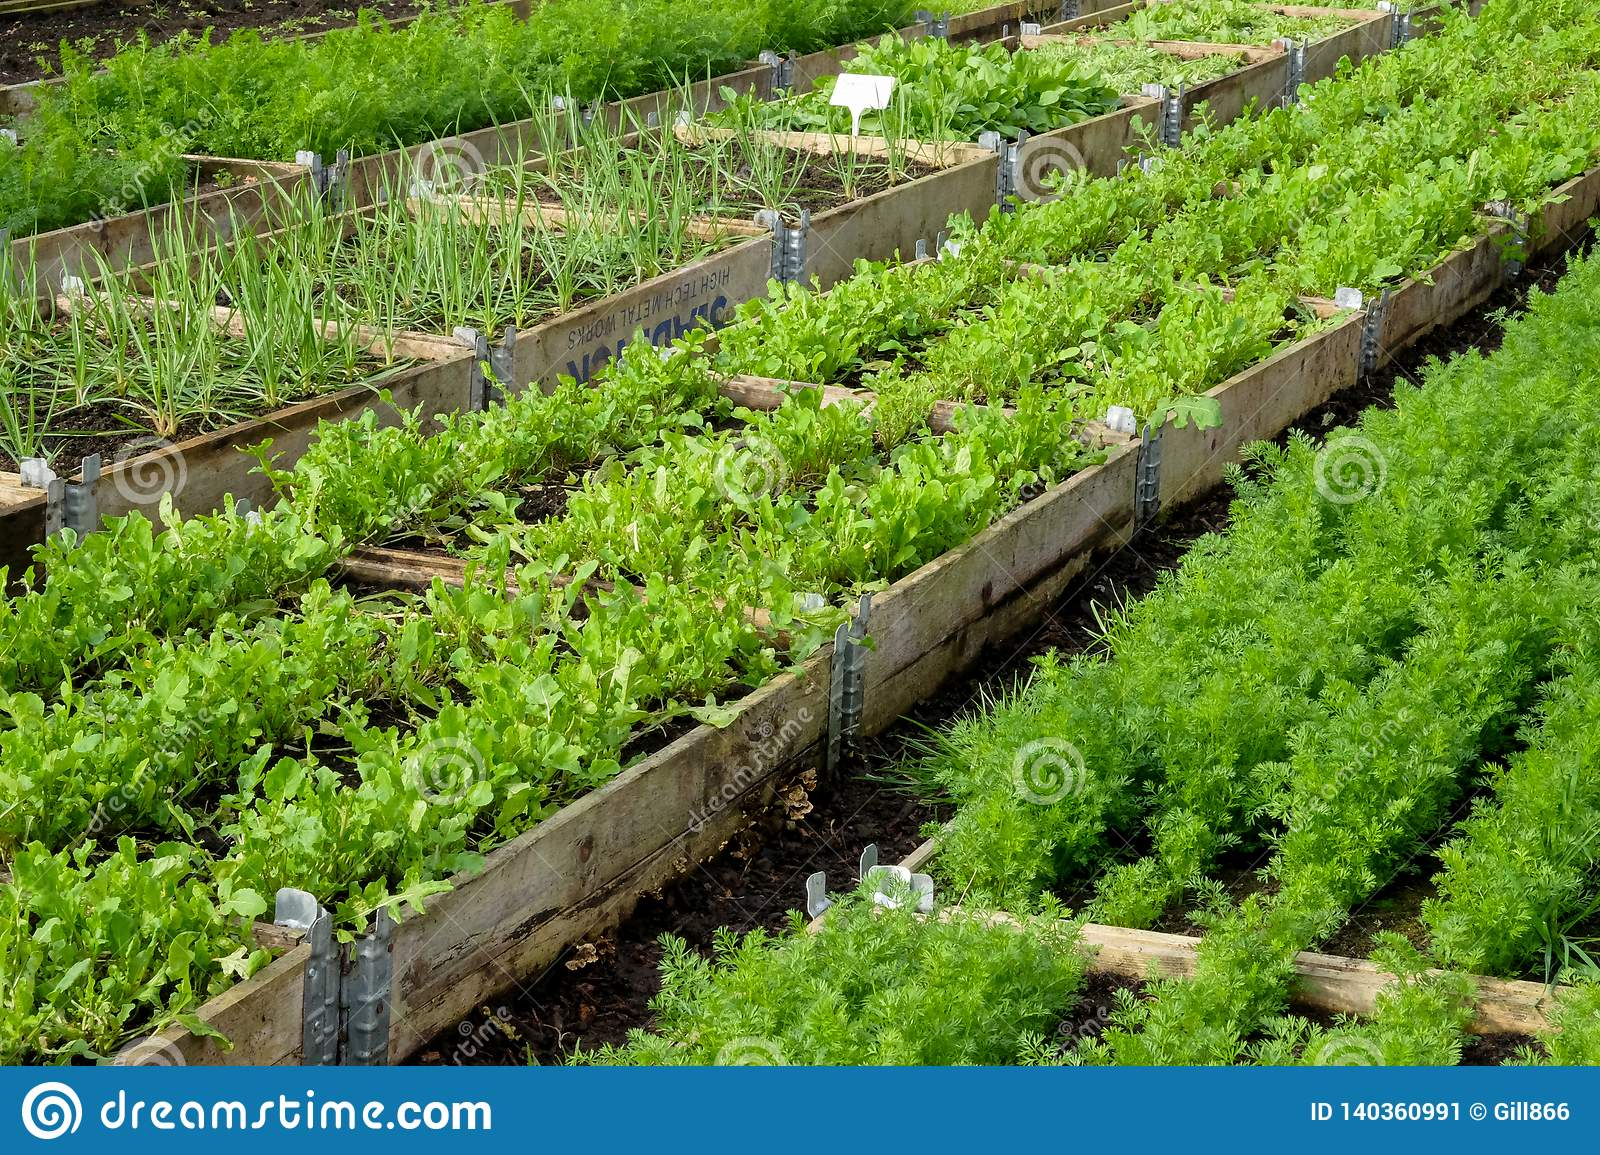 Picture of: Rows Of Raised Vegatable Beds In A Plastic Green House Stock Image Image Of Farm Industrial 140360991